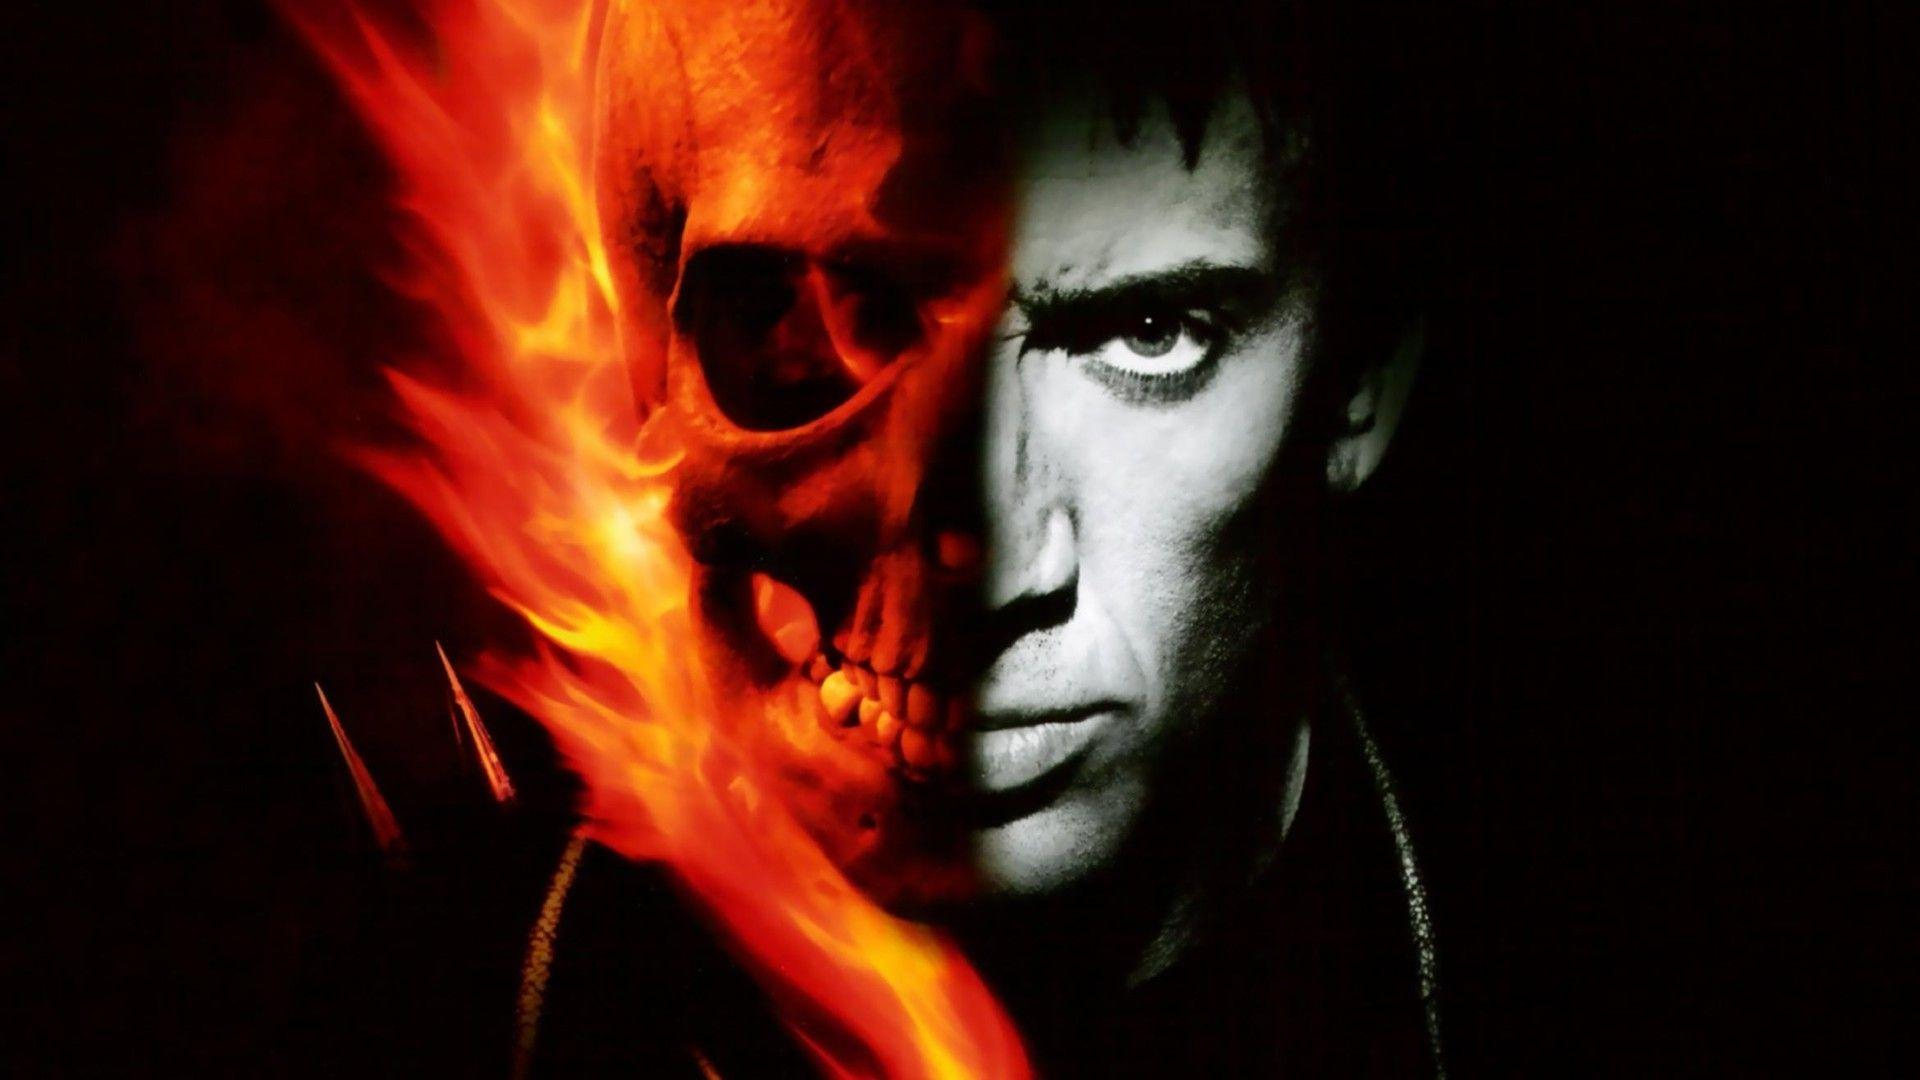 The Ghost Rider Wallpapers